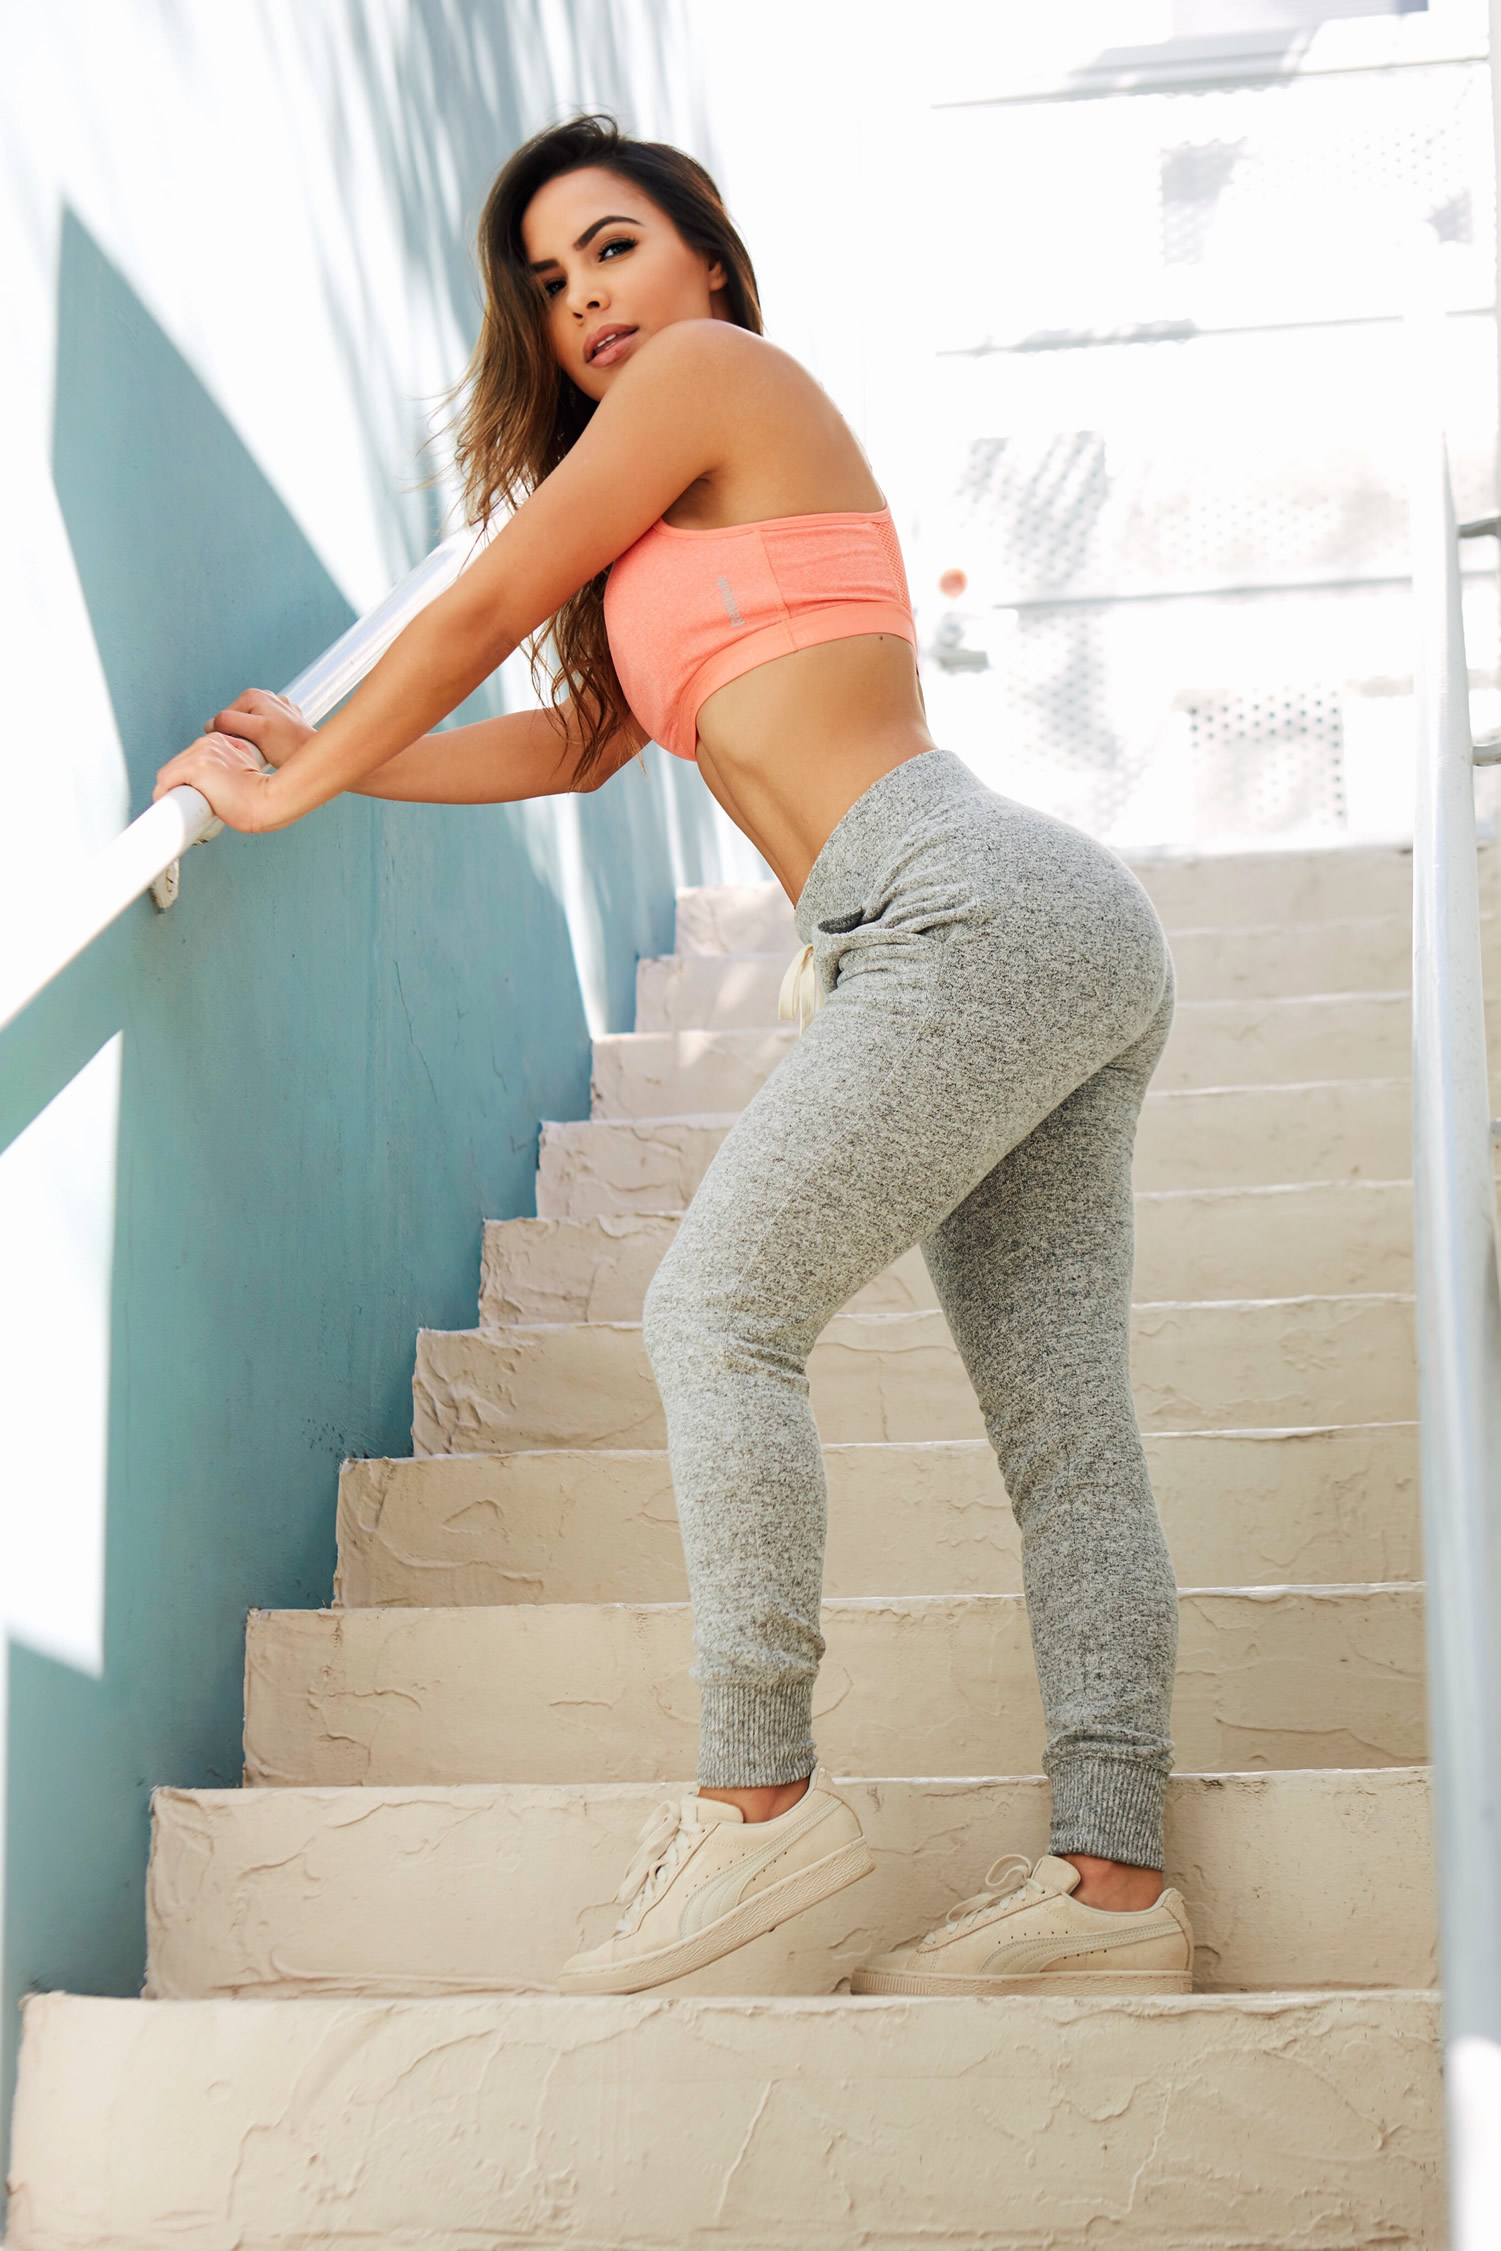 lisa-morales-fitness-workout-motivation-hacks-2